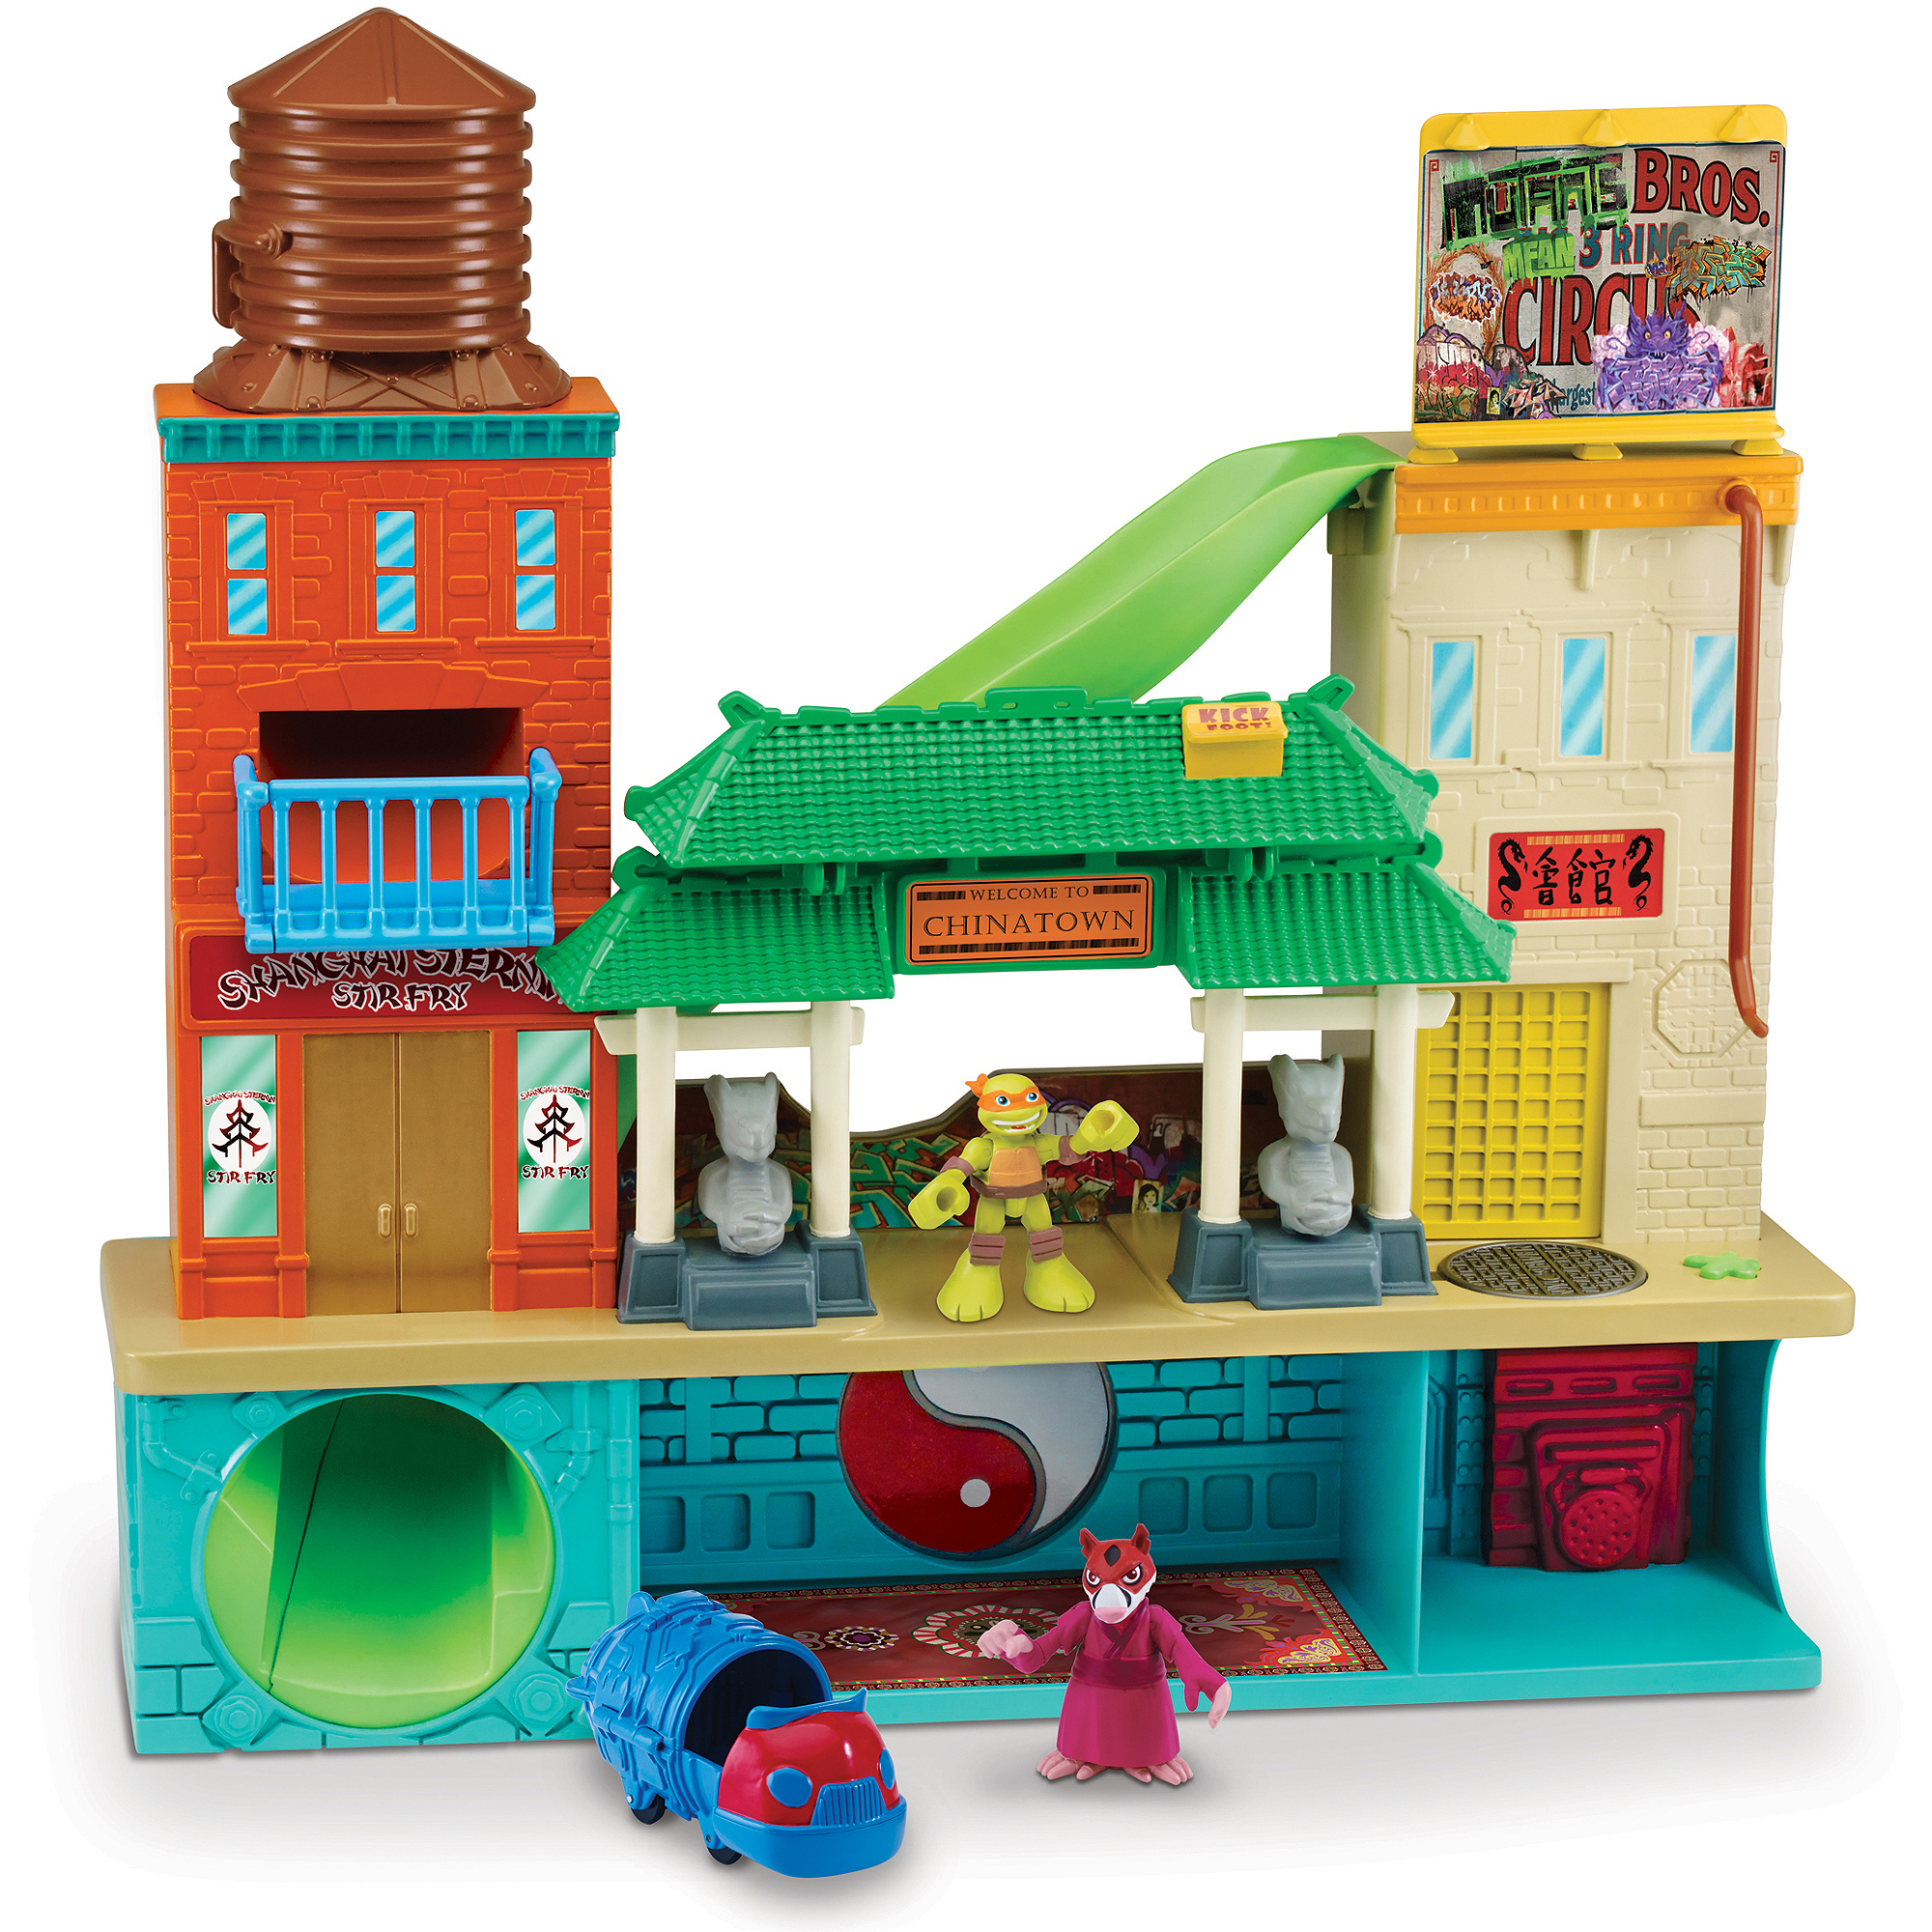 Teenage Mutant Ninja Turtles Sewer Lair Playset with Mikey and Splinter